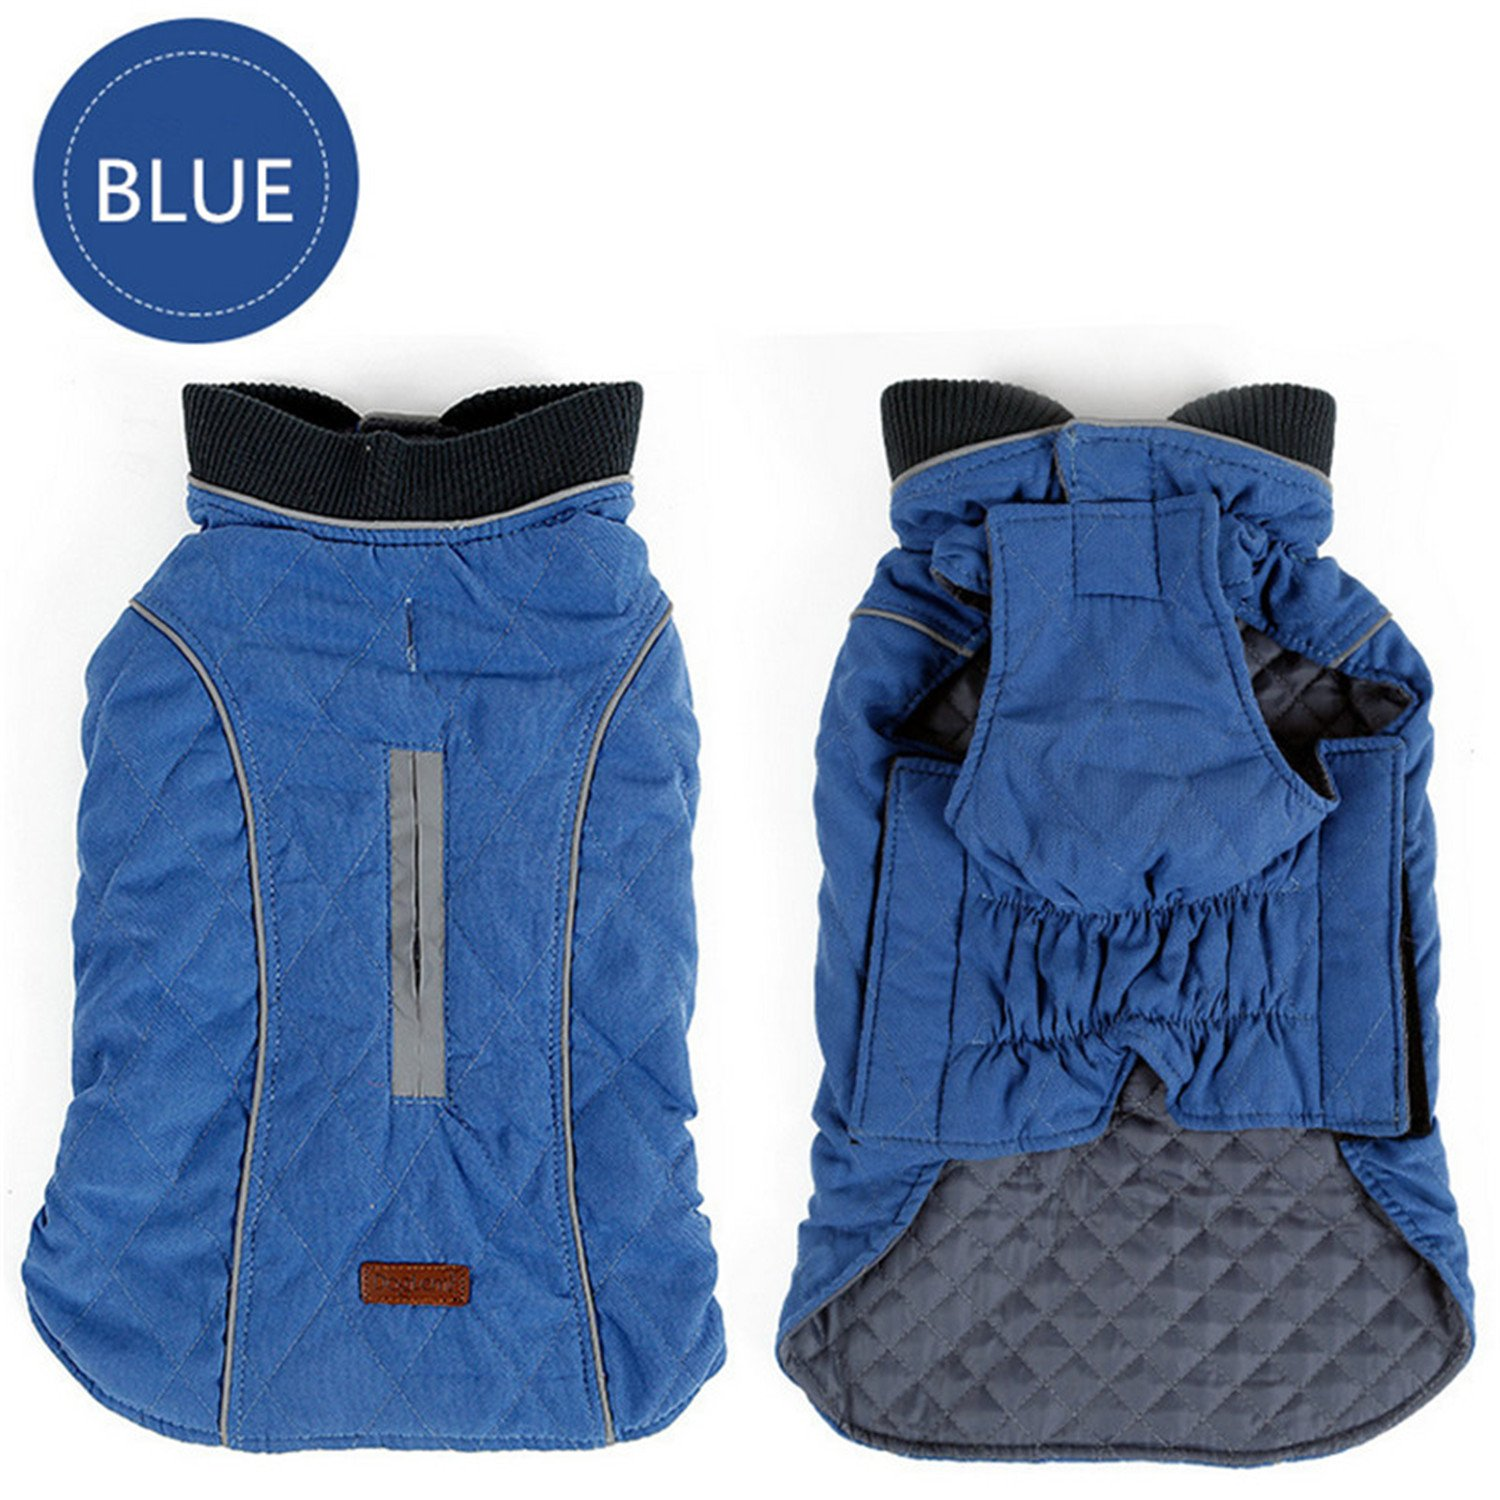 bluee SDog Clothes Quilted Dog Coat Water Repellent Winter Dog Pet Jacket Vest Retro Cozy Warm Pet